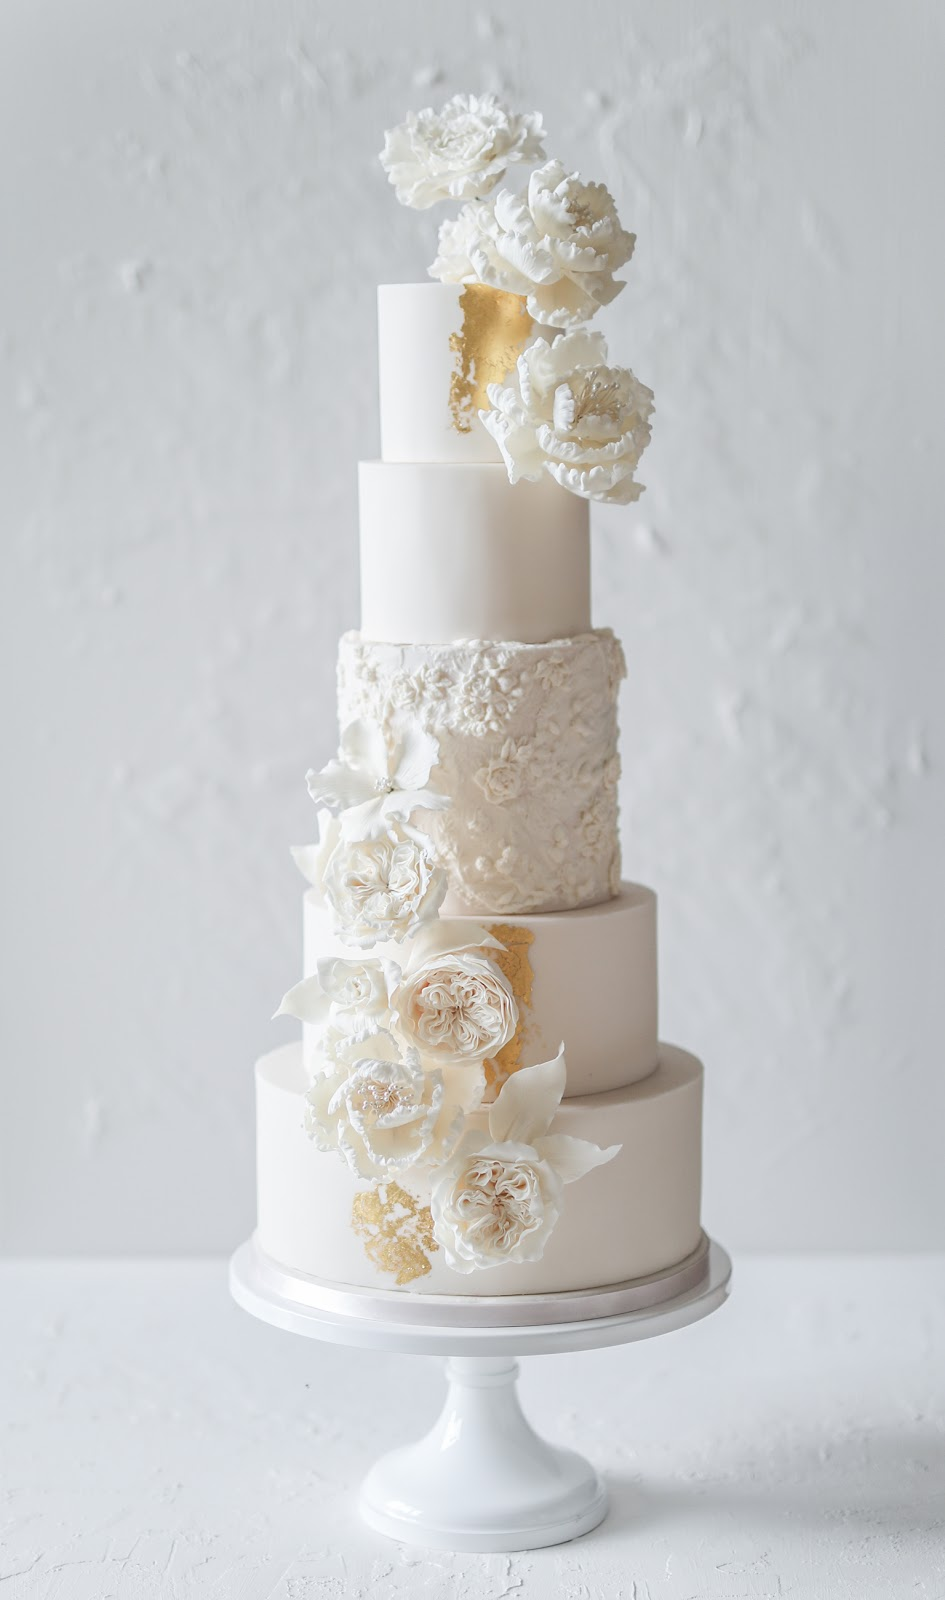 Wedding Cake Trends 2018, Unique Styles to Celebrate Love